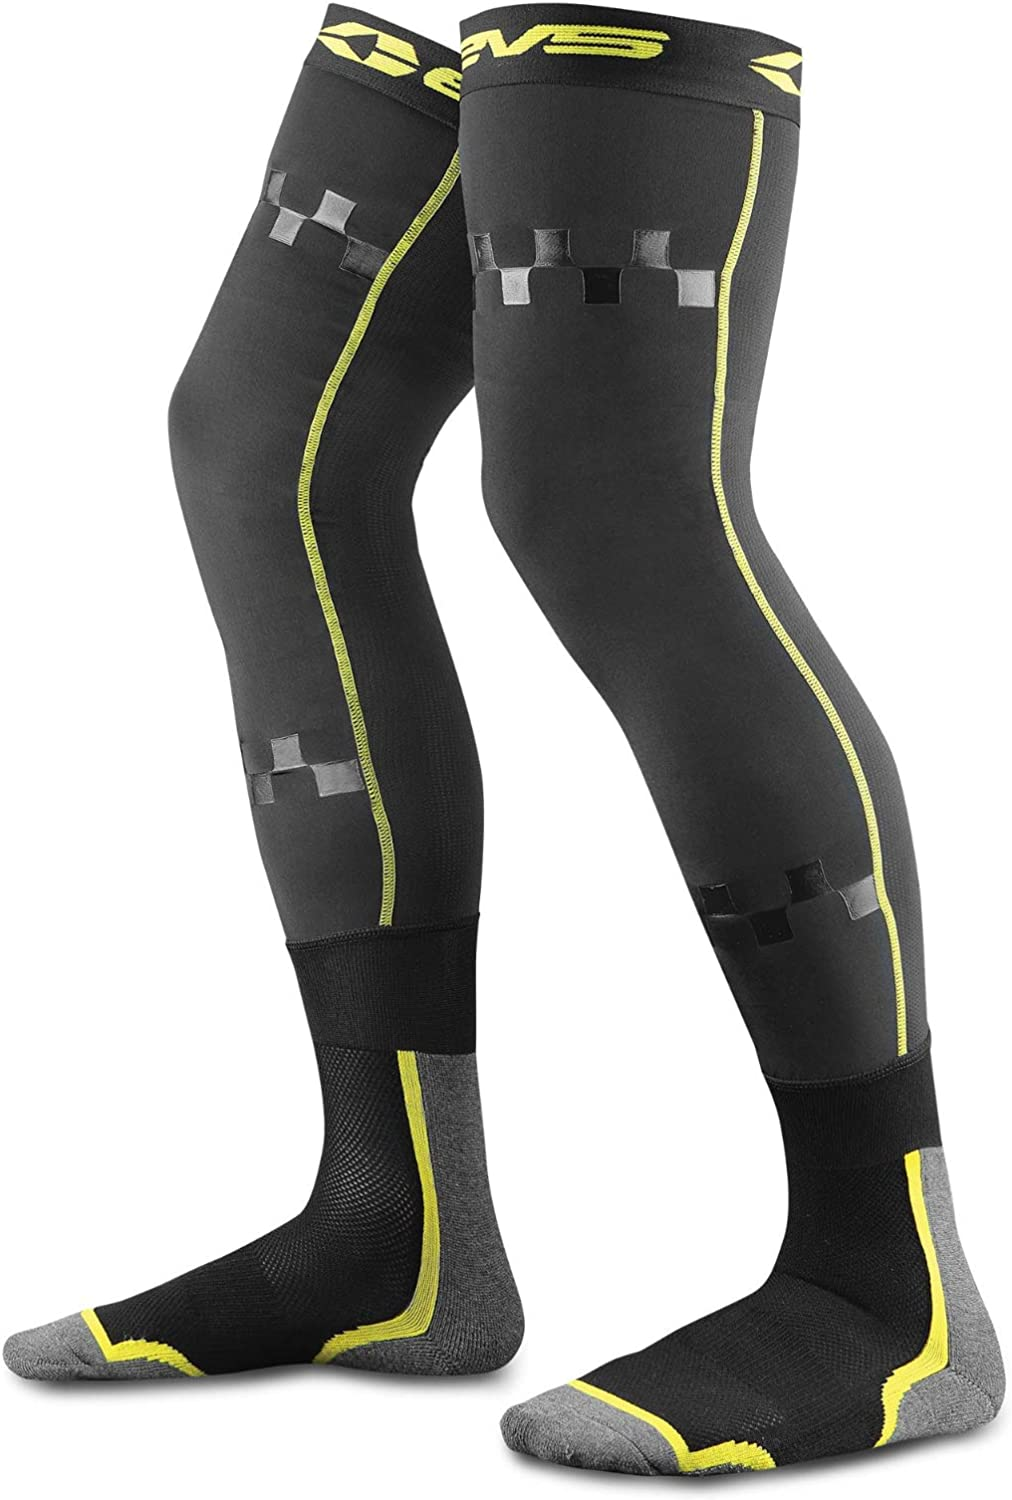 EVS Sports Unisex-Adult Fusion store Combo Sleeve Max 42% OFF Socks